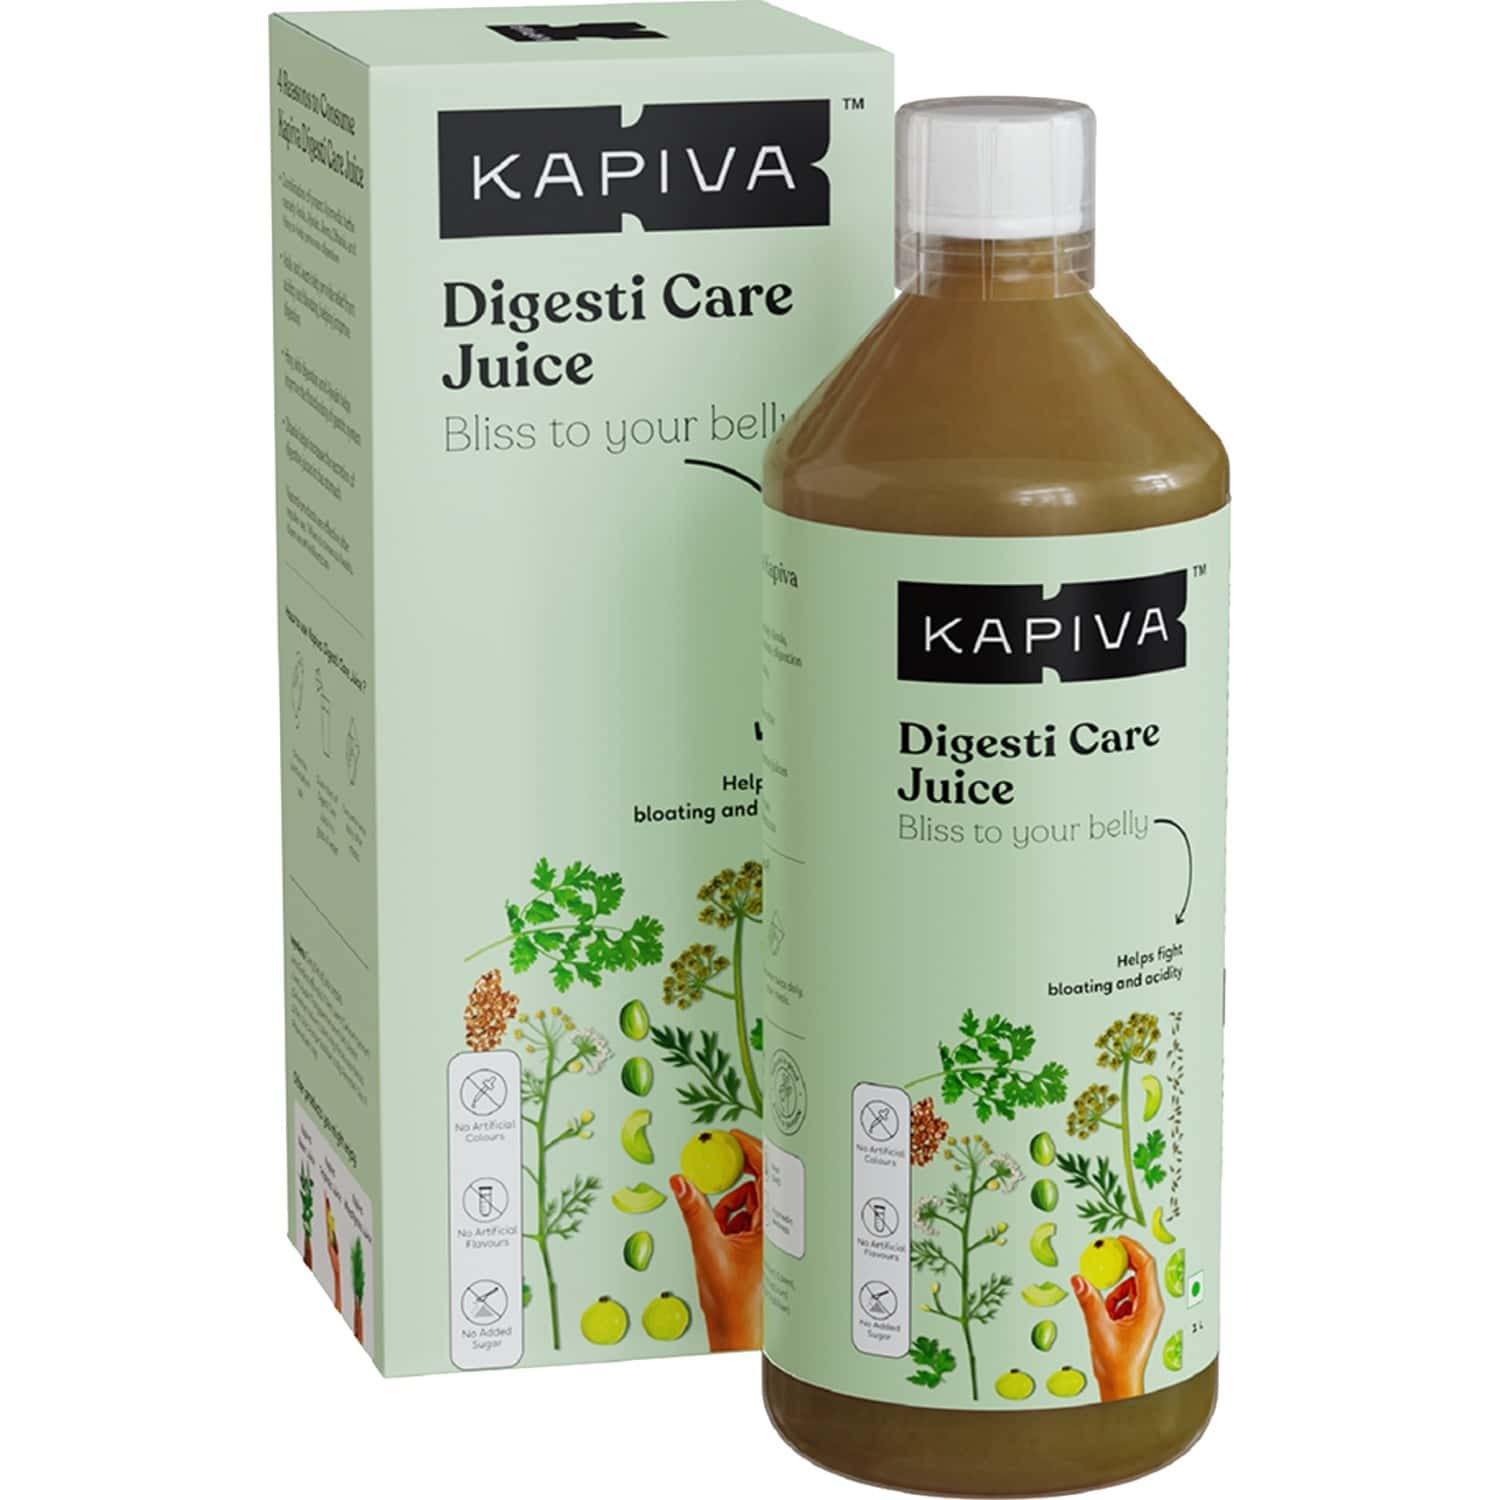 Kapiva Digesti Care Juice Provides Relief From Acidity & Bloating | Blend Of 5 Ayurvedic Herbs To Aid Digestion 1l